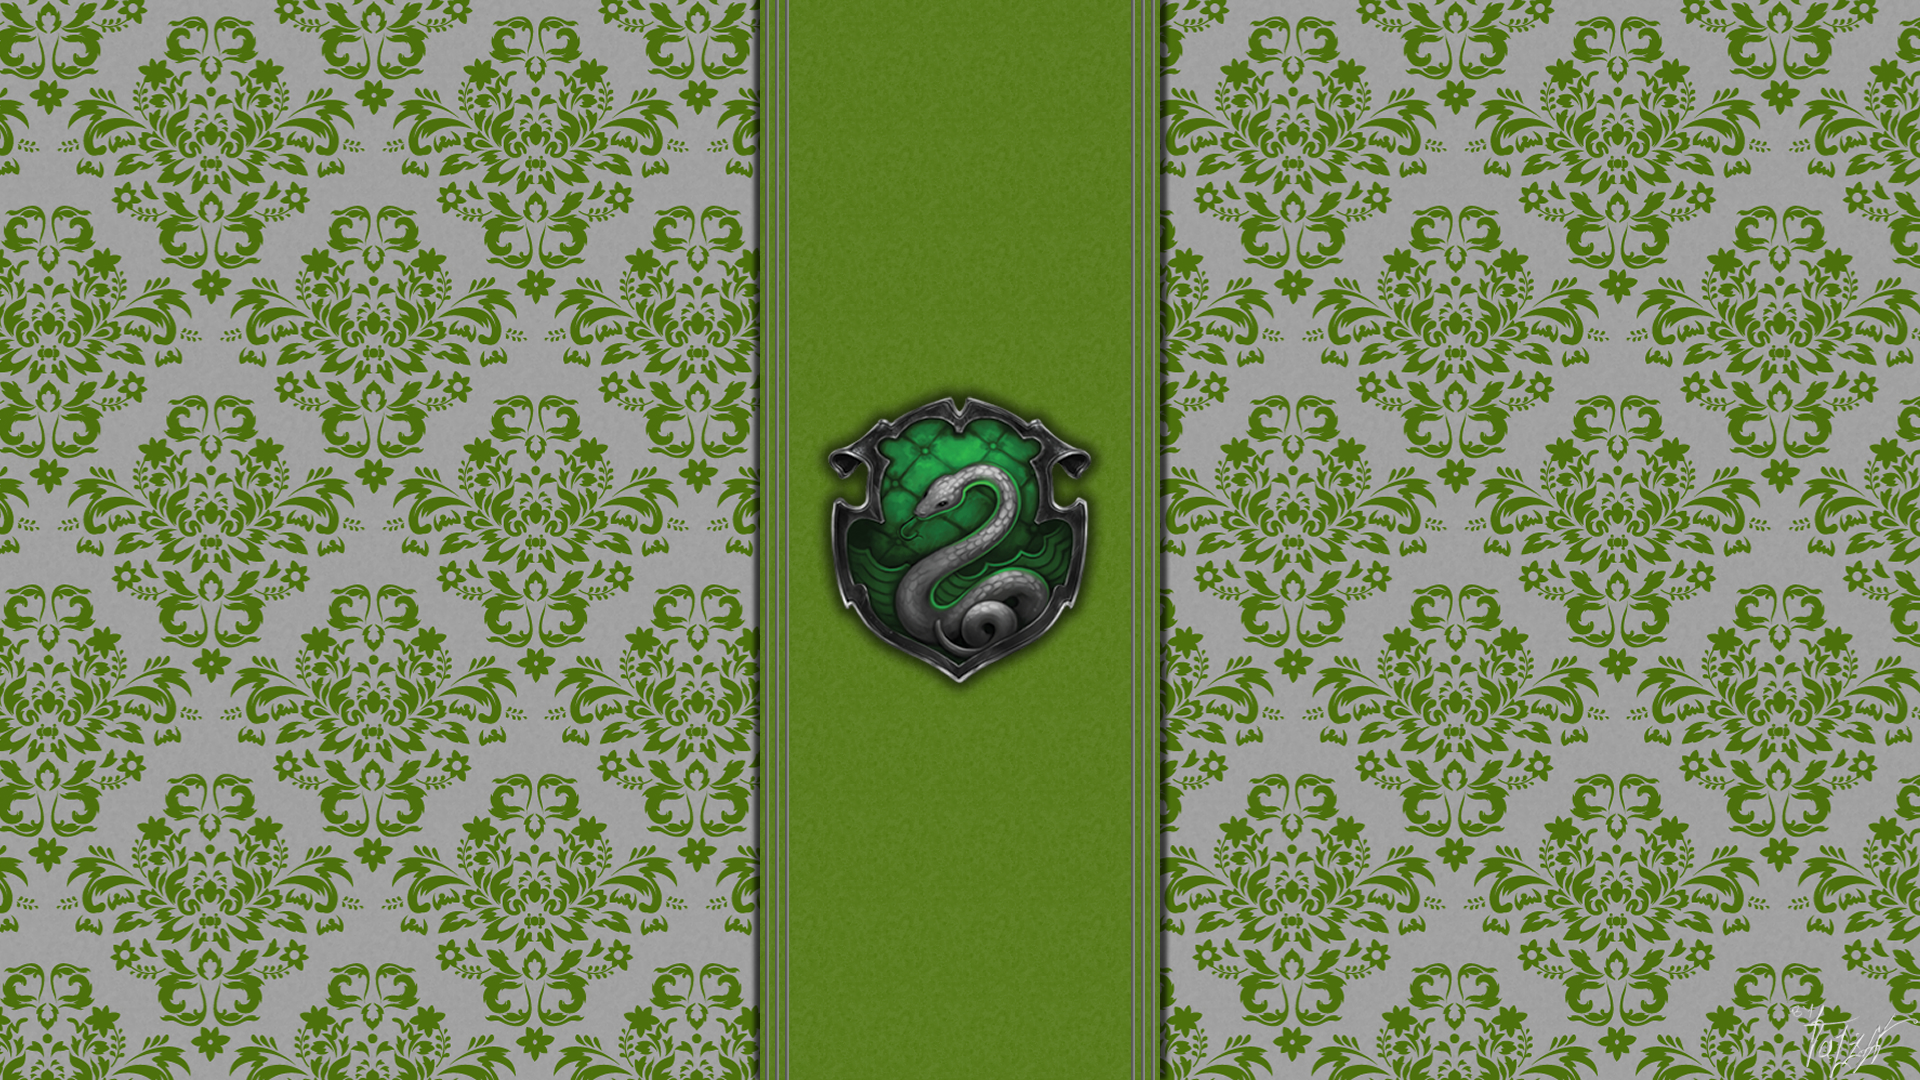 Desktop-Slytherin-wallpaper-wp3604790